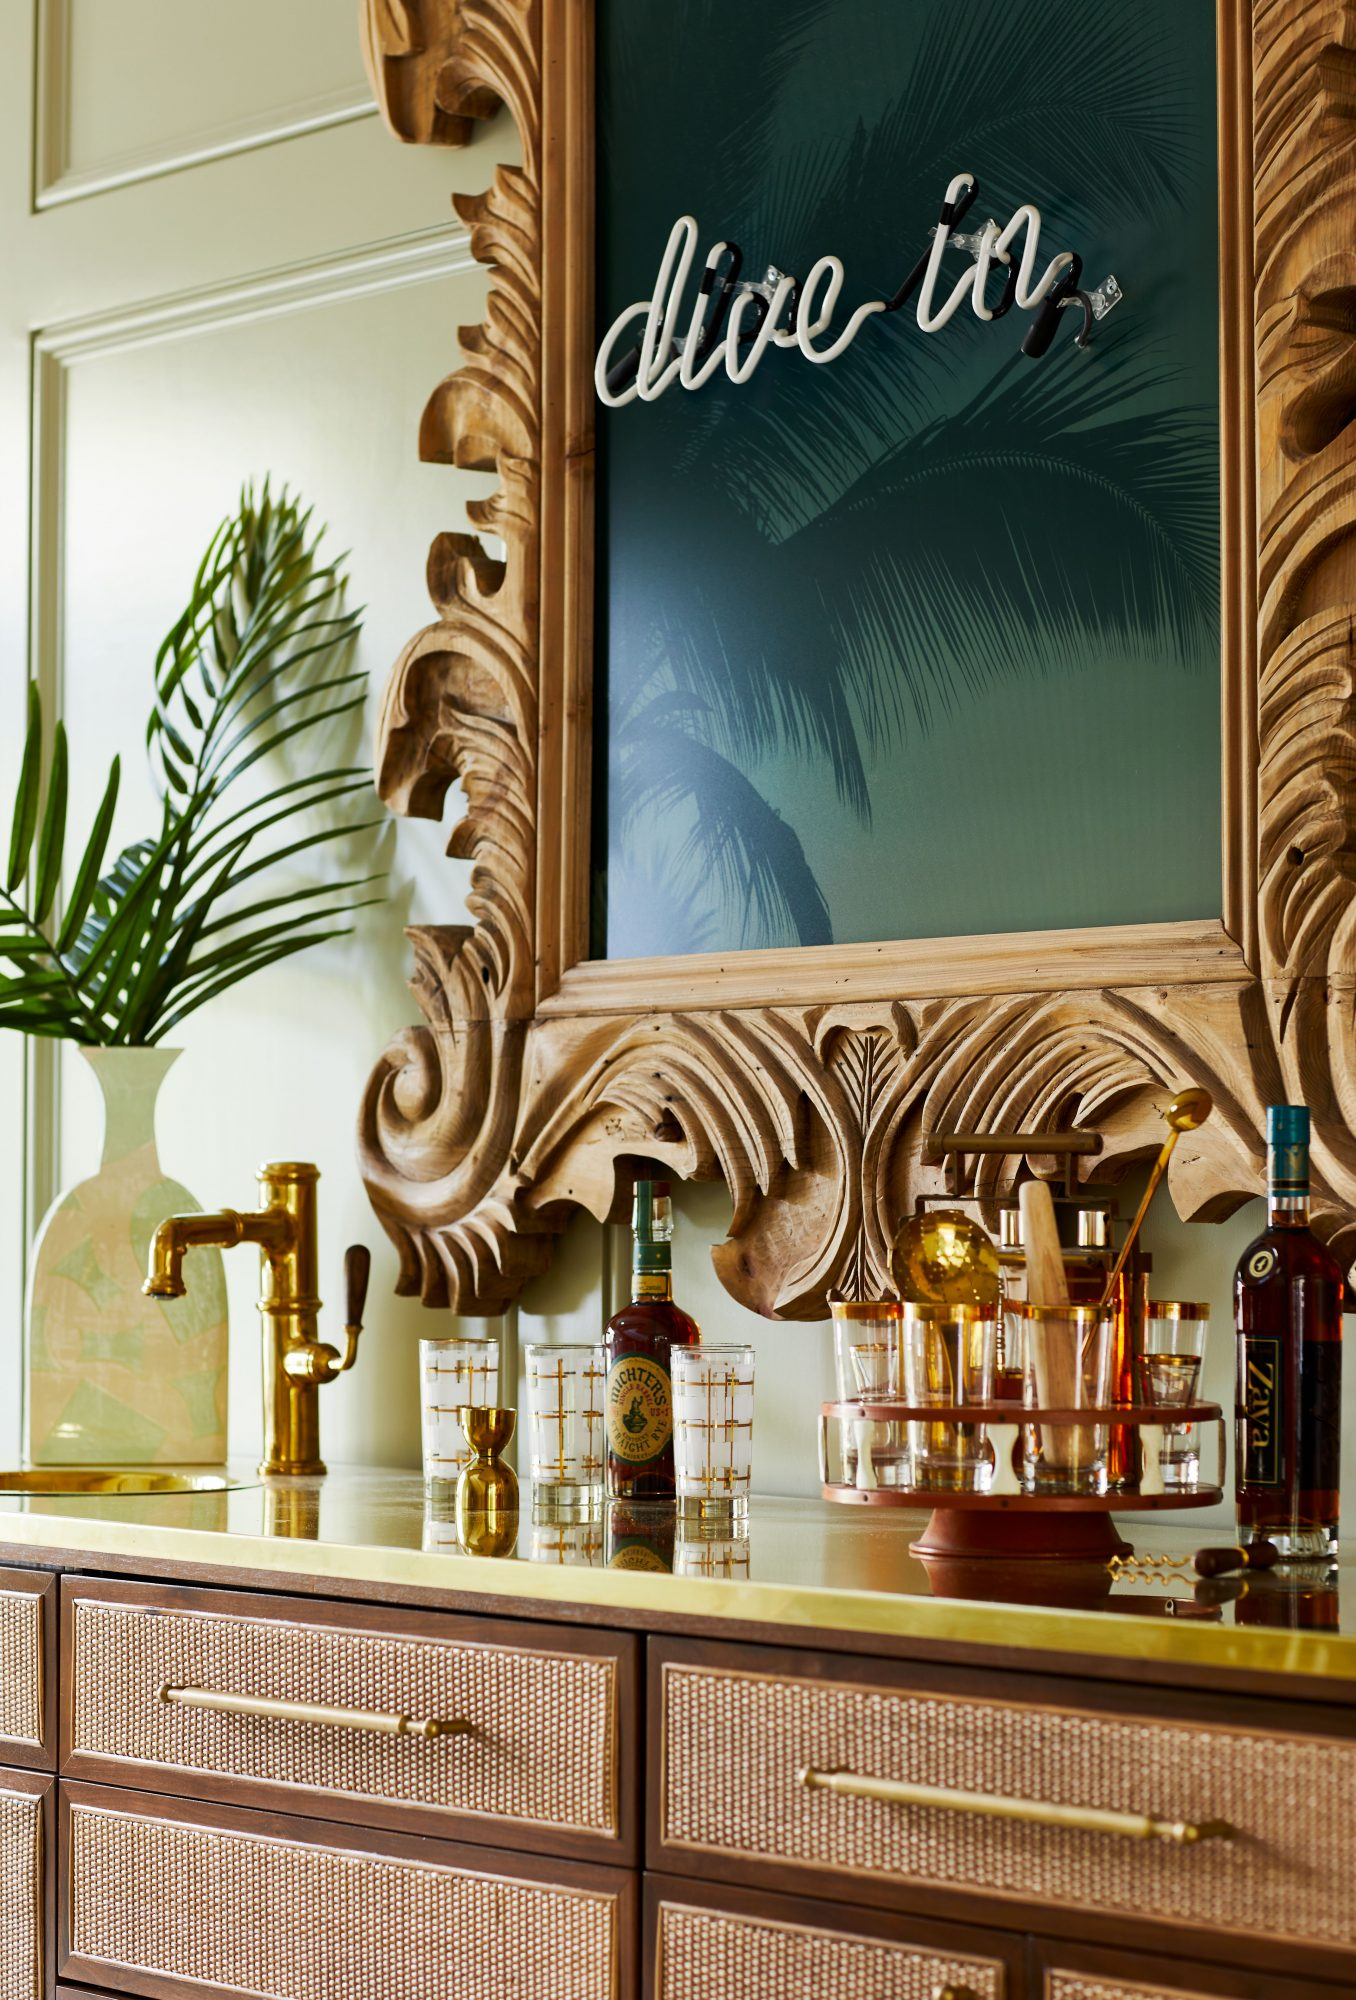 Credenza Styled Wet Bar in Traditional House